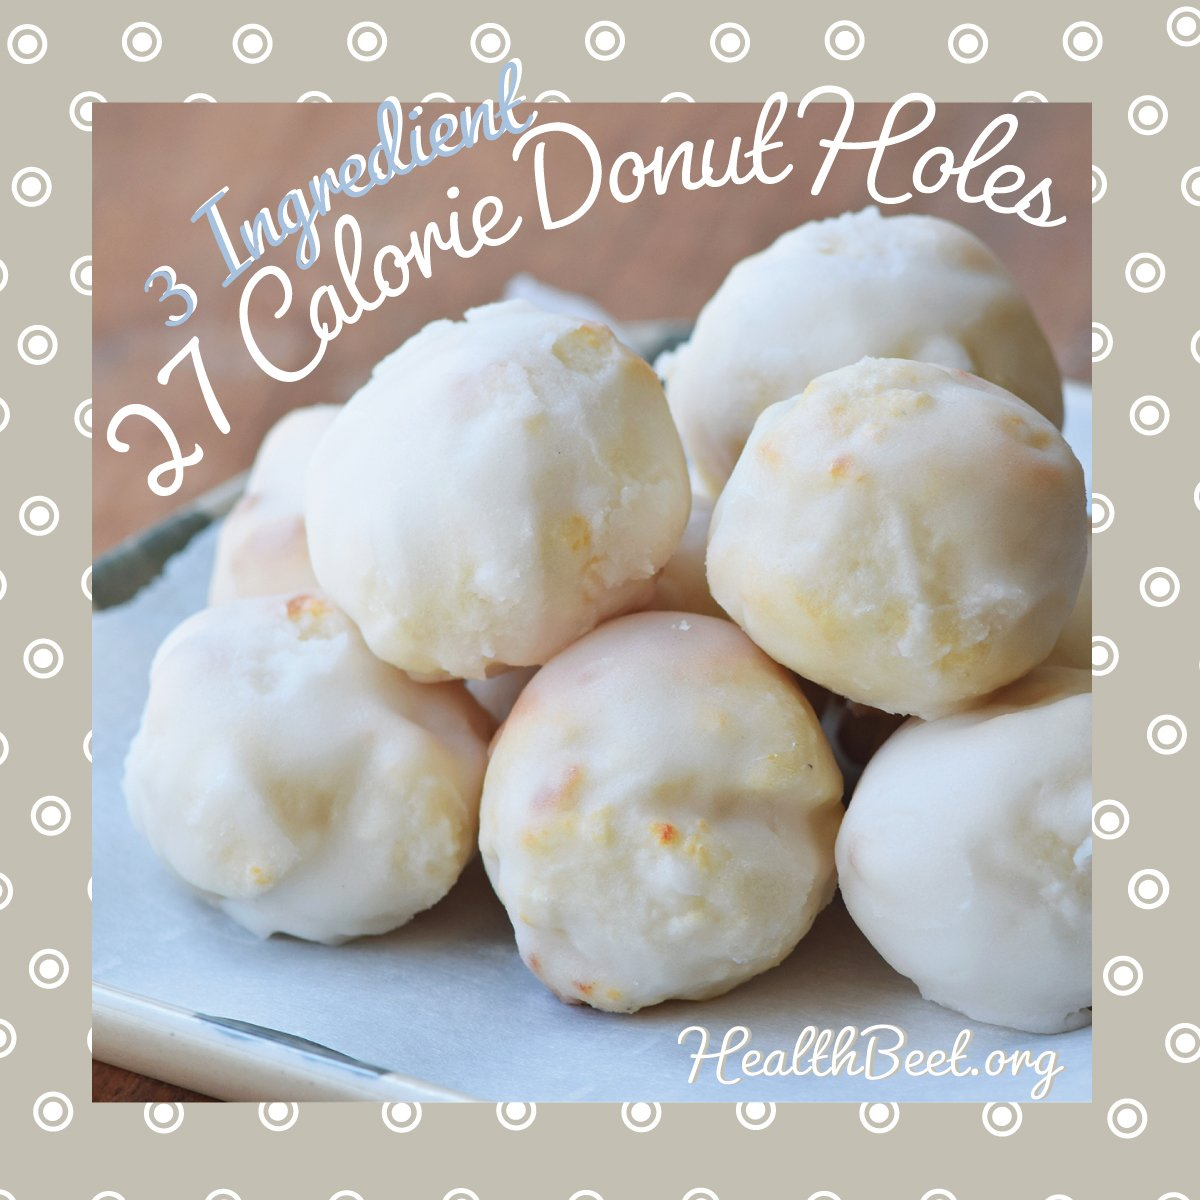 Sugar Free fat free Donut Hole Polka Dot